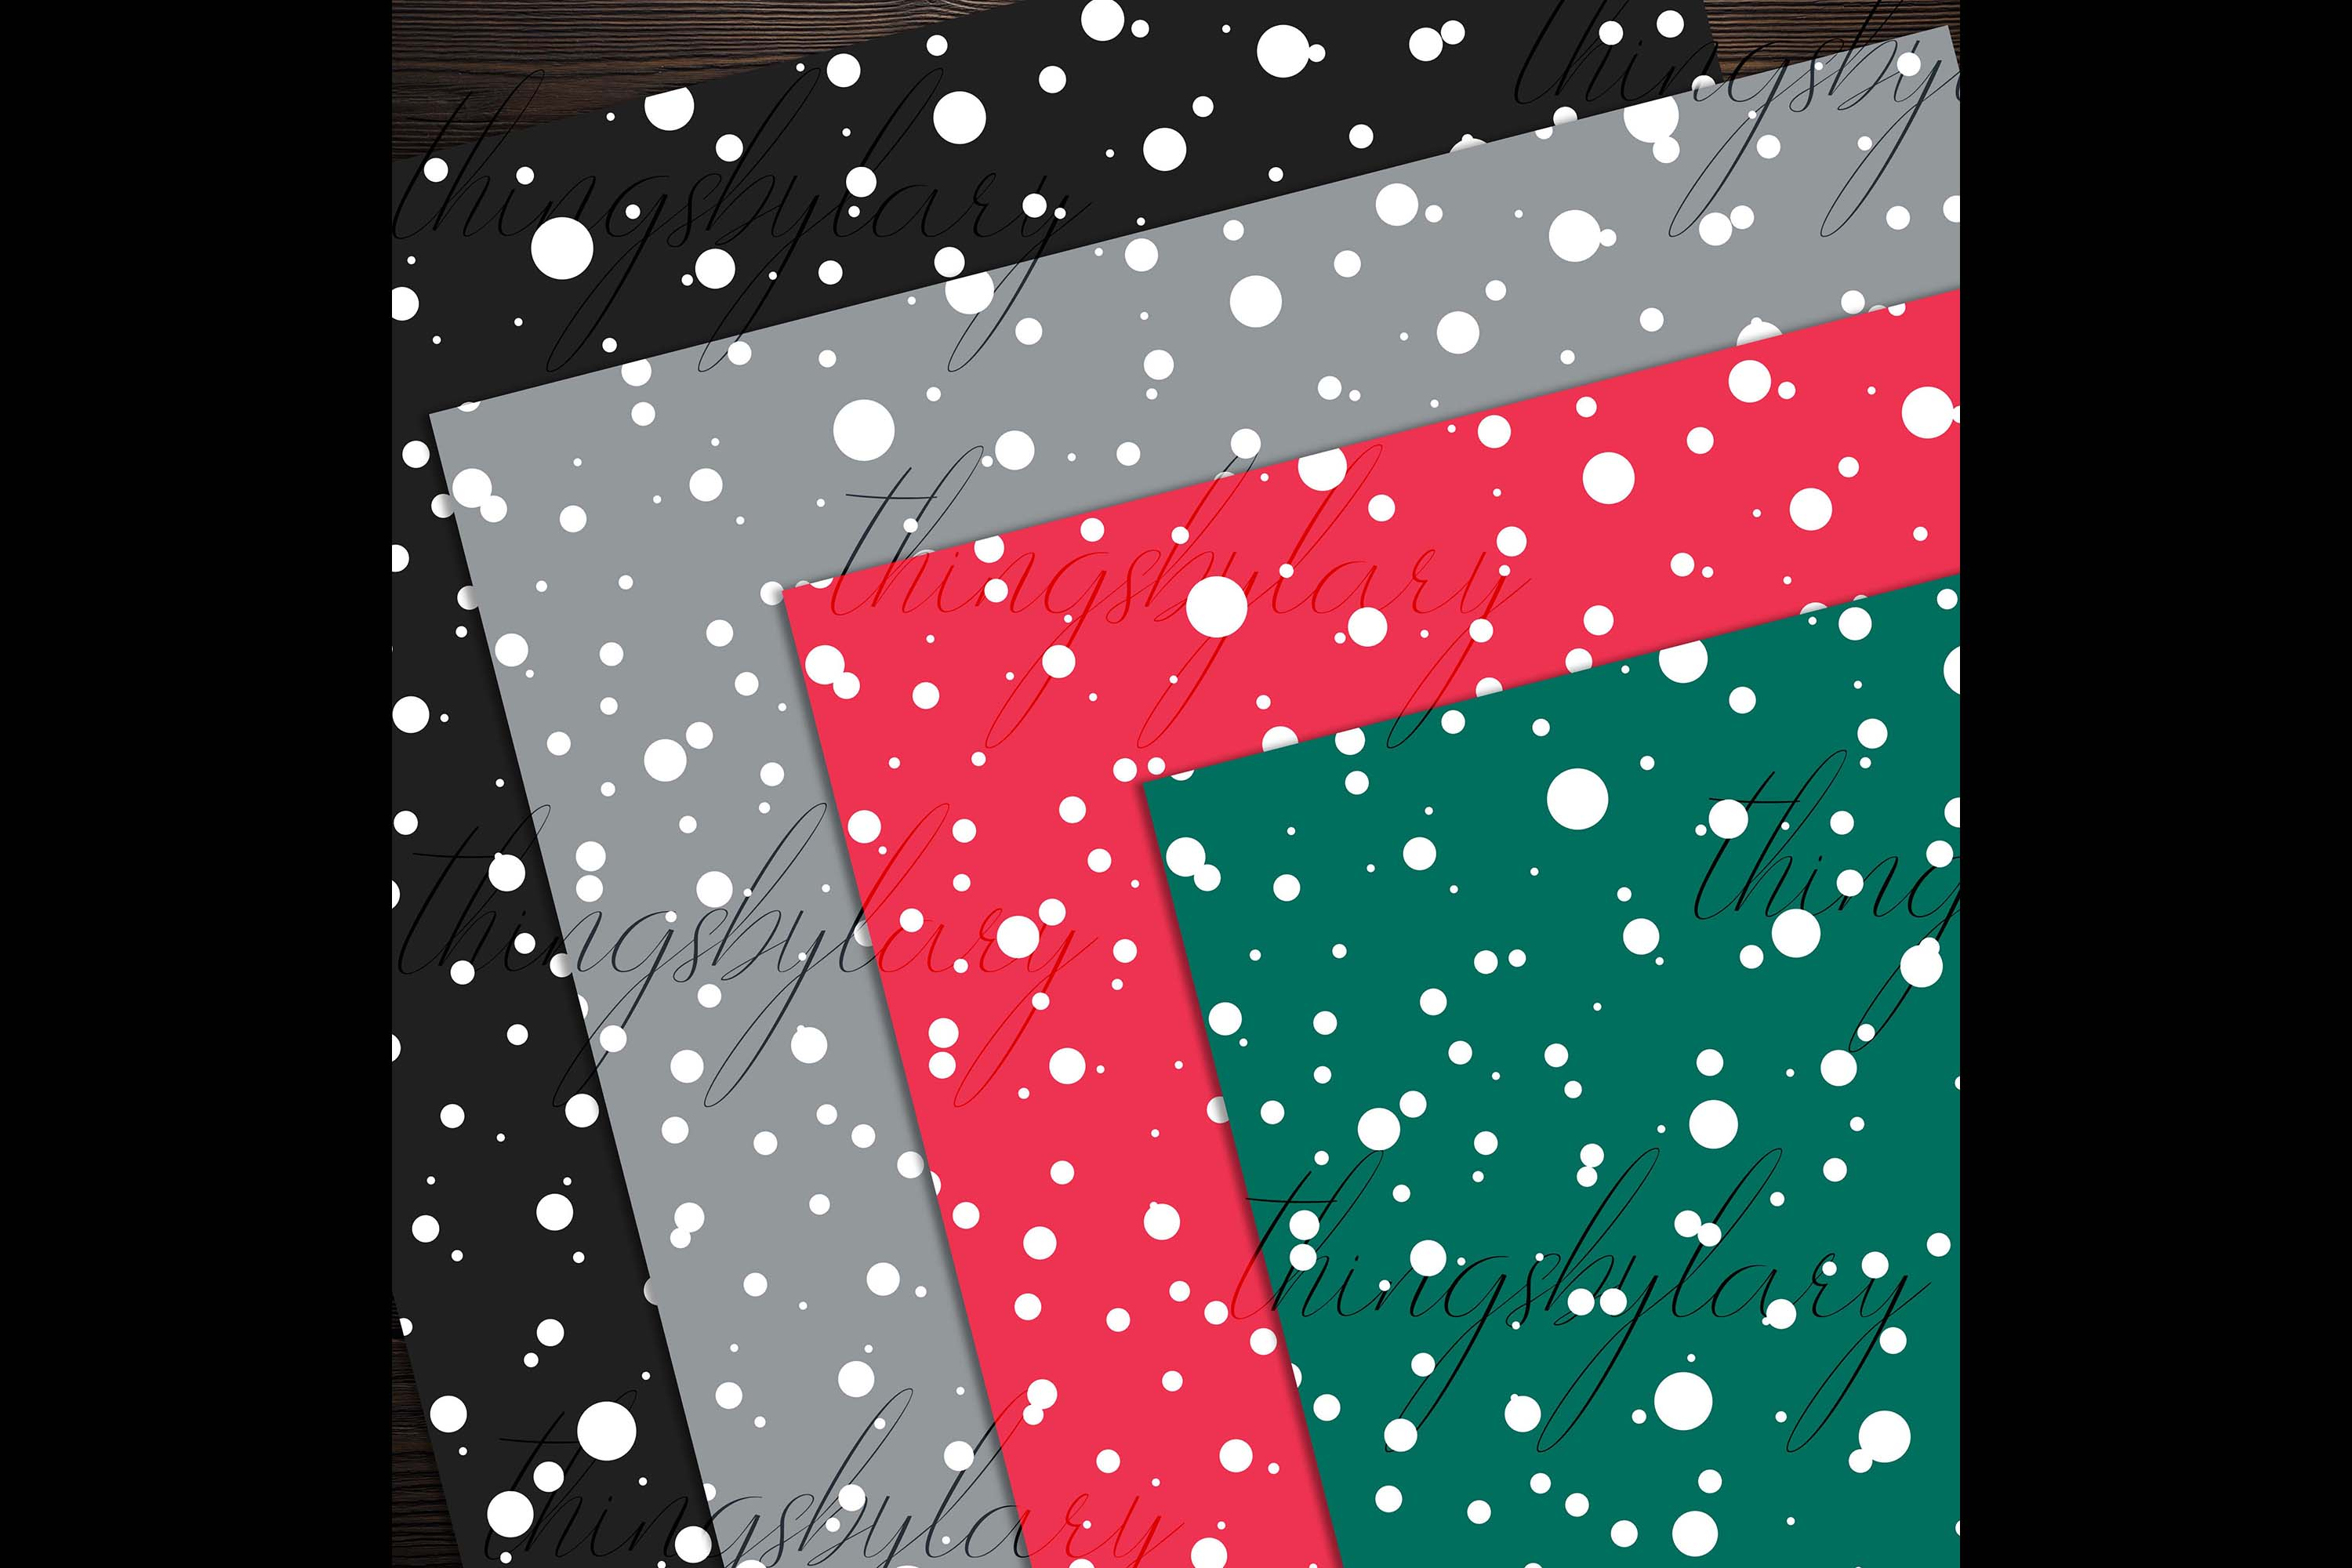 100 Seamless Falling Christmas White Snow Digital Papers example image 4